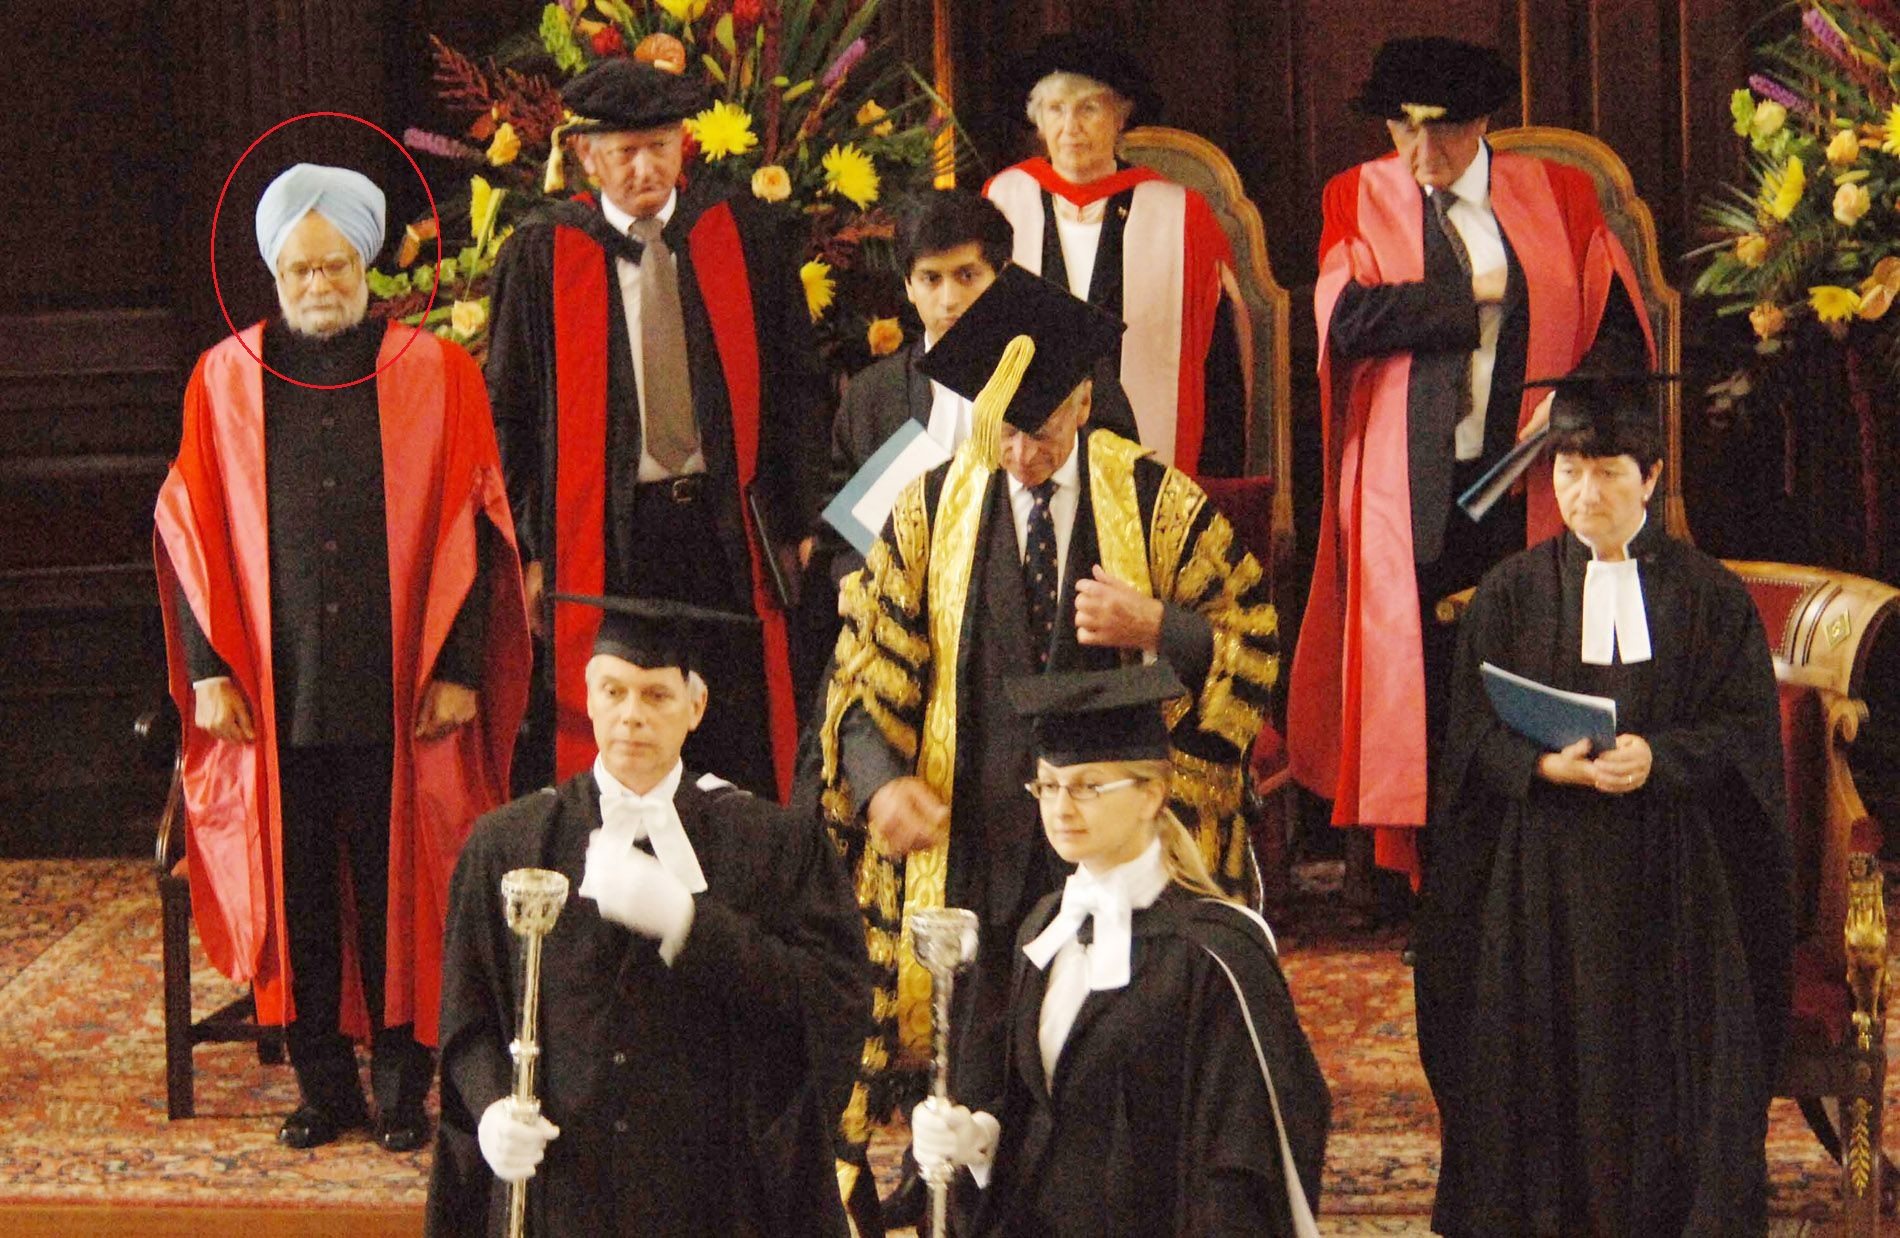 Manmohan Singh Conferred With Honorary Doctoral Degree, Edinburgh, London